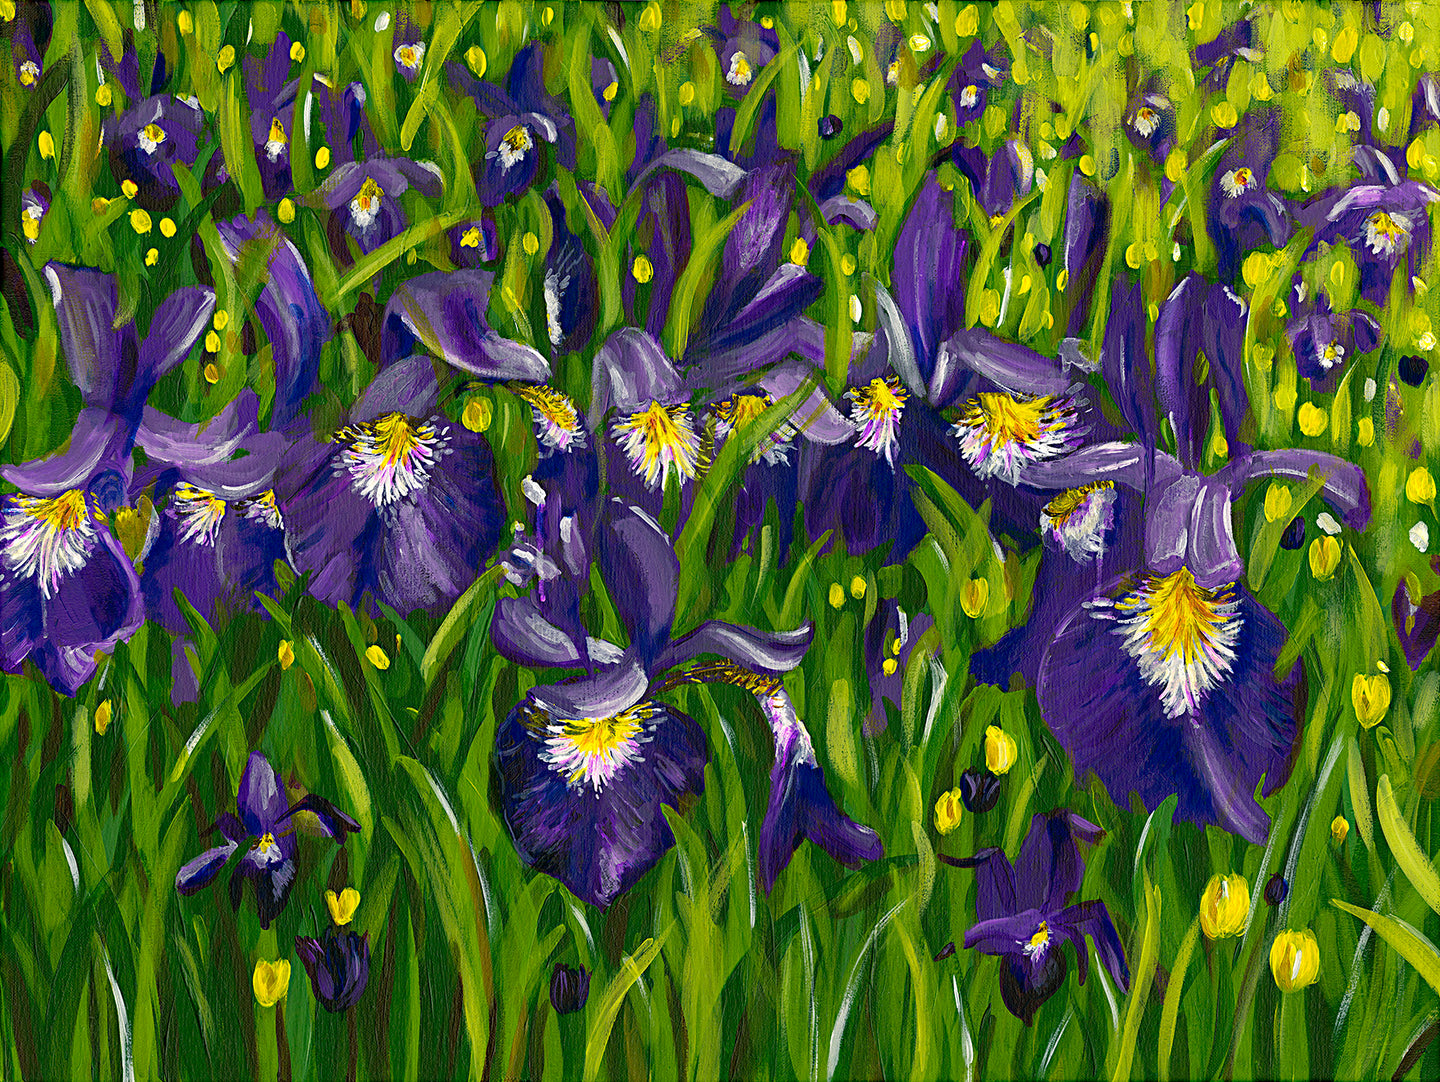 Large Acrylic Painting Iris Field Landscape, floral, flowers,abstract art, purple, green, yellow, white paint, judy century, original canvas painting fine art print, deep edge